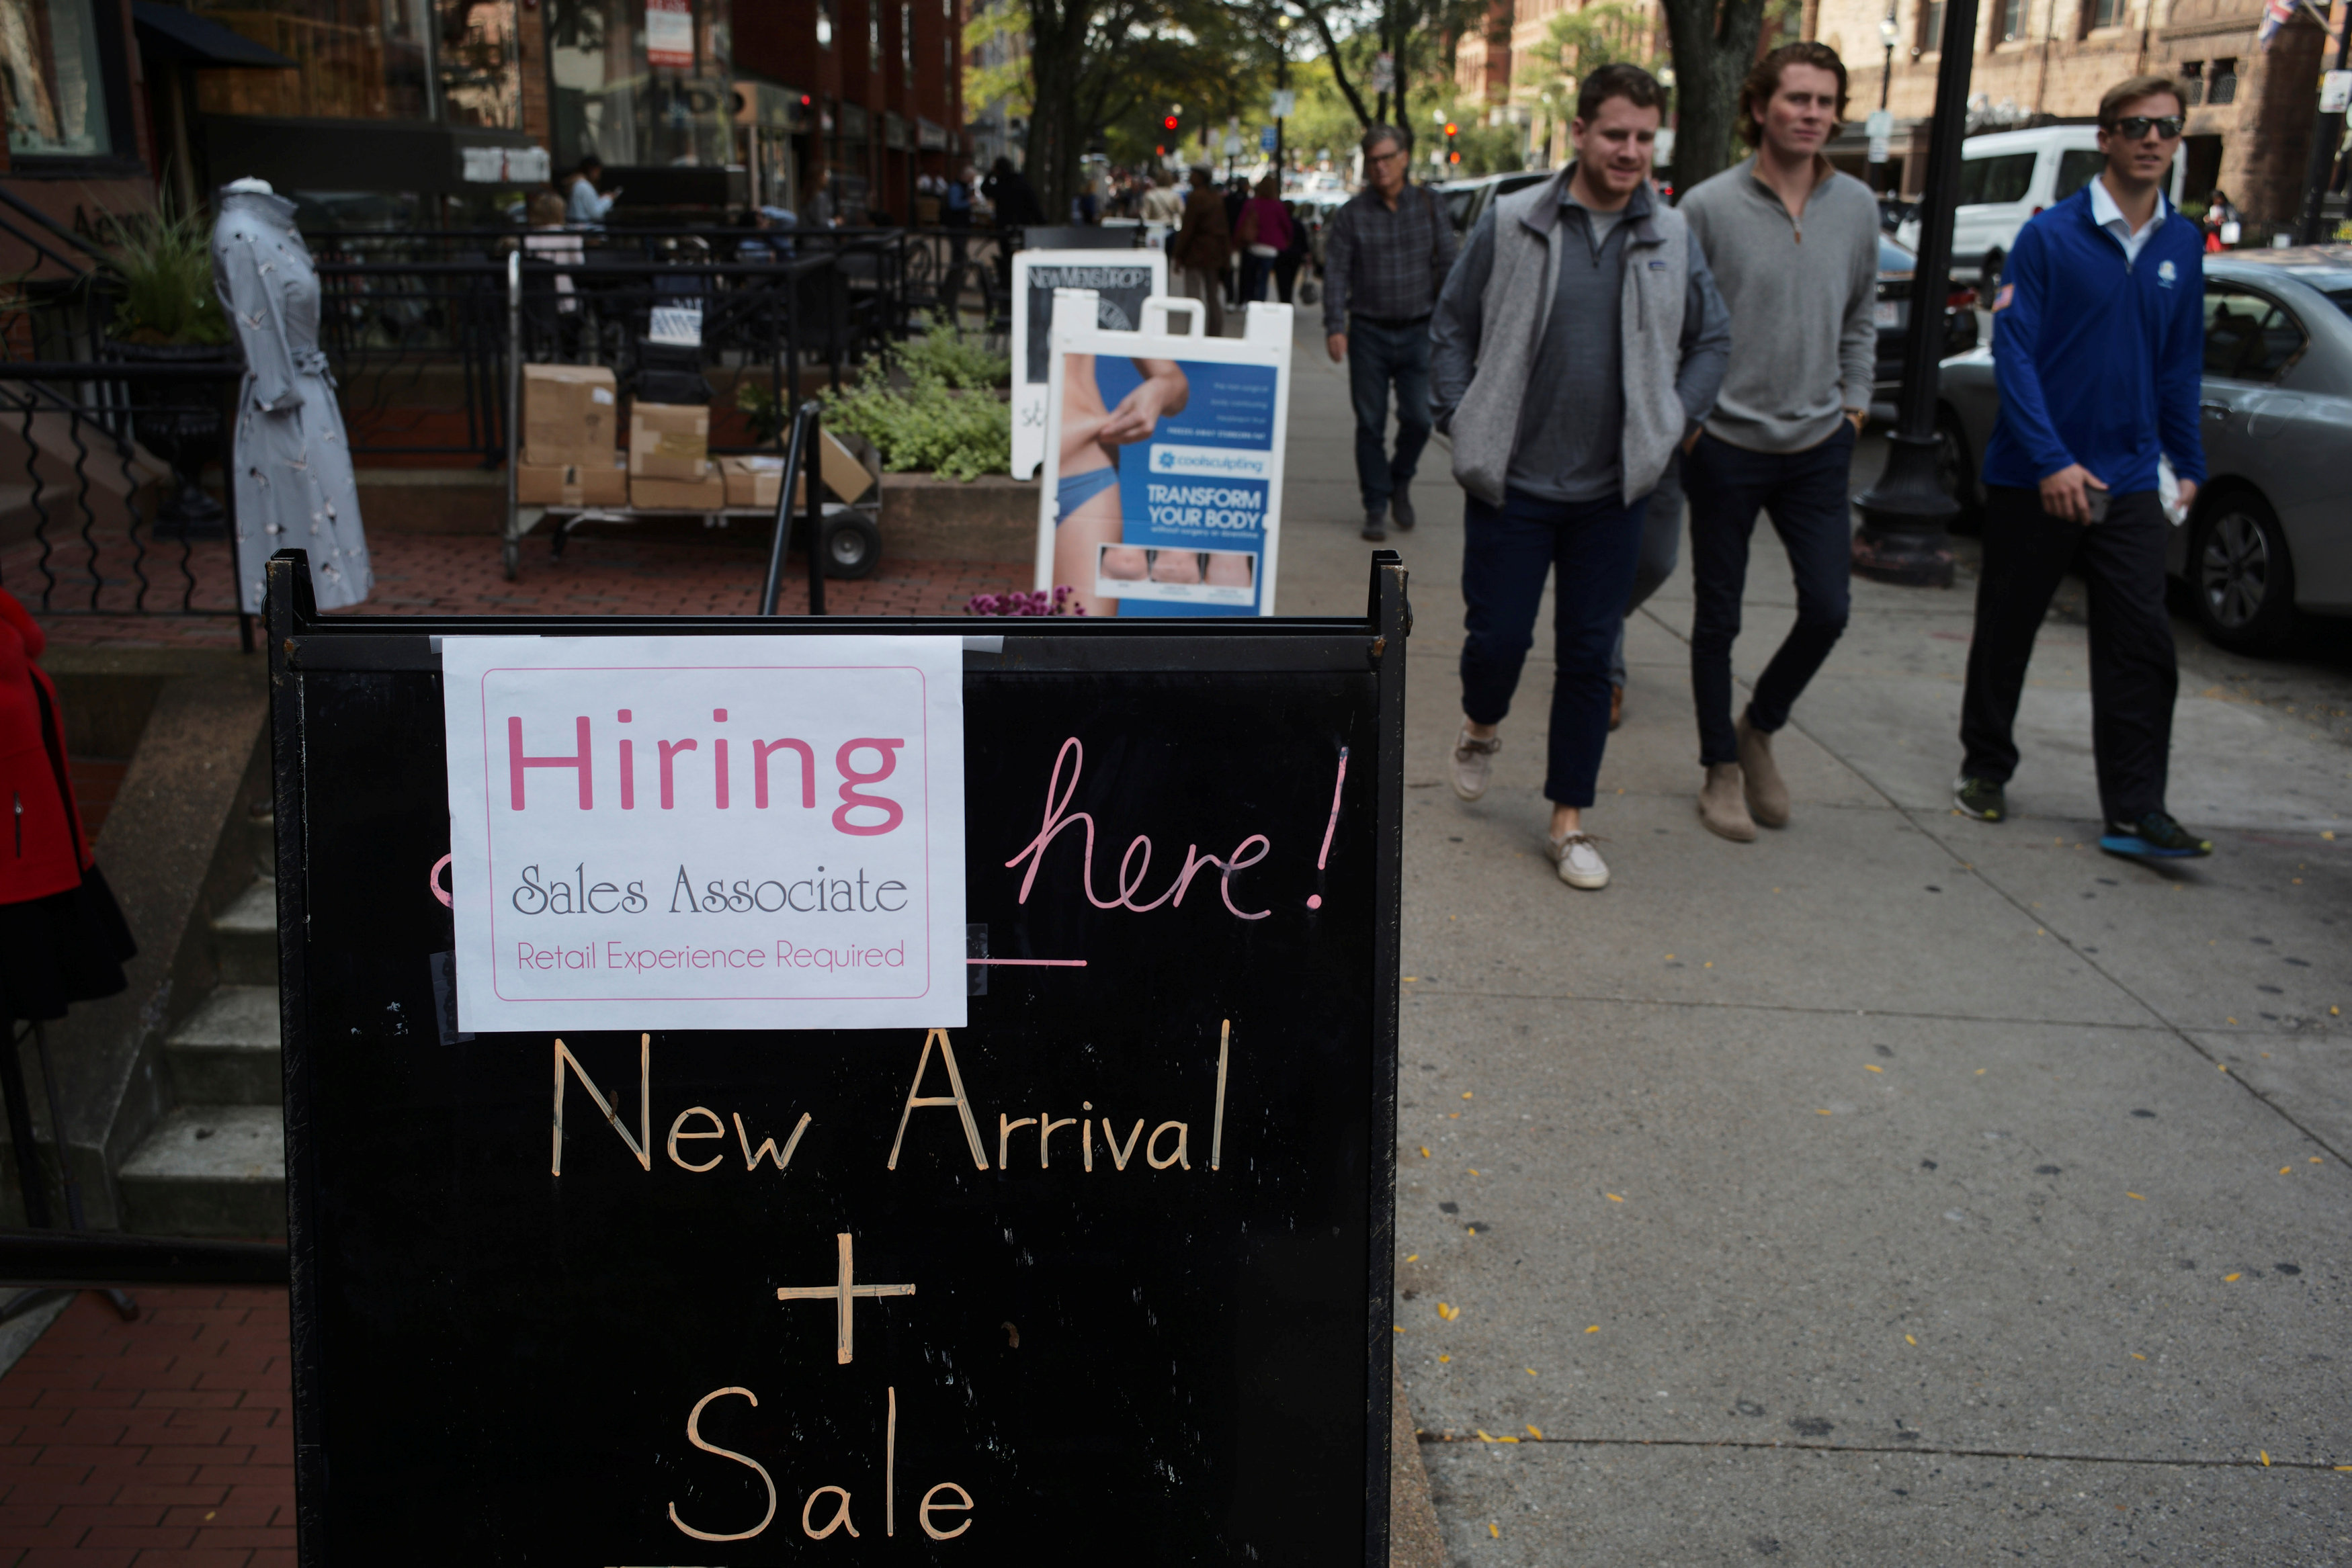 Pedestrians pass a sign advertising a sale and a job opening at a shop on Newbury Street in Boston, Massachusetts, U.S., October 11, 2017. REUTERS/Brian Snyder